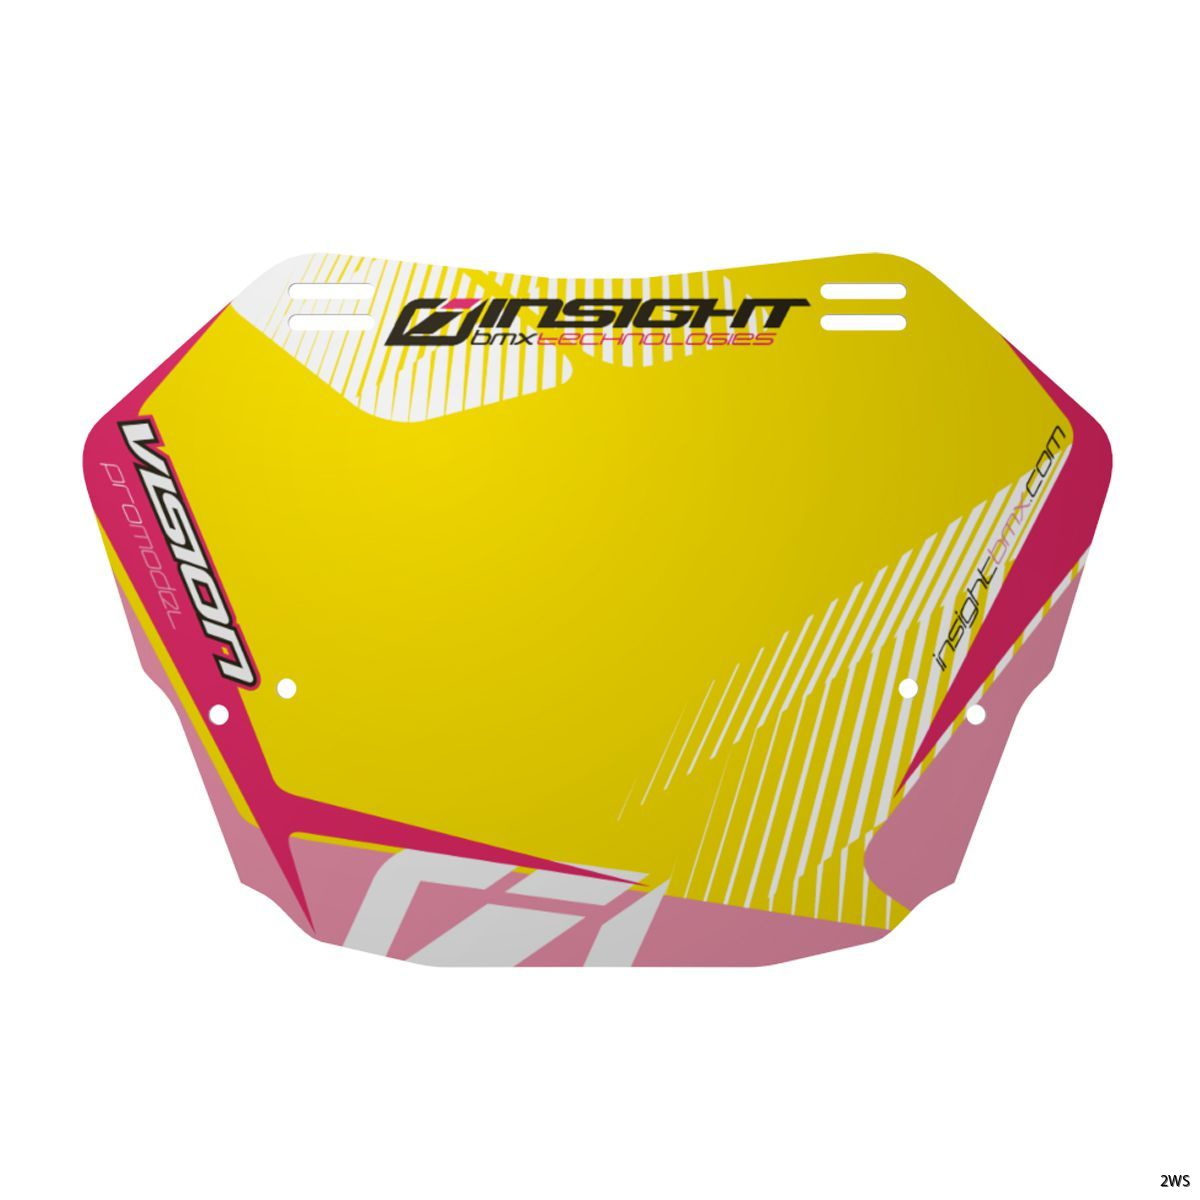 insight-number-plate-vision-pro-yellow-rosa